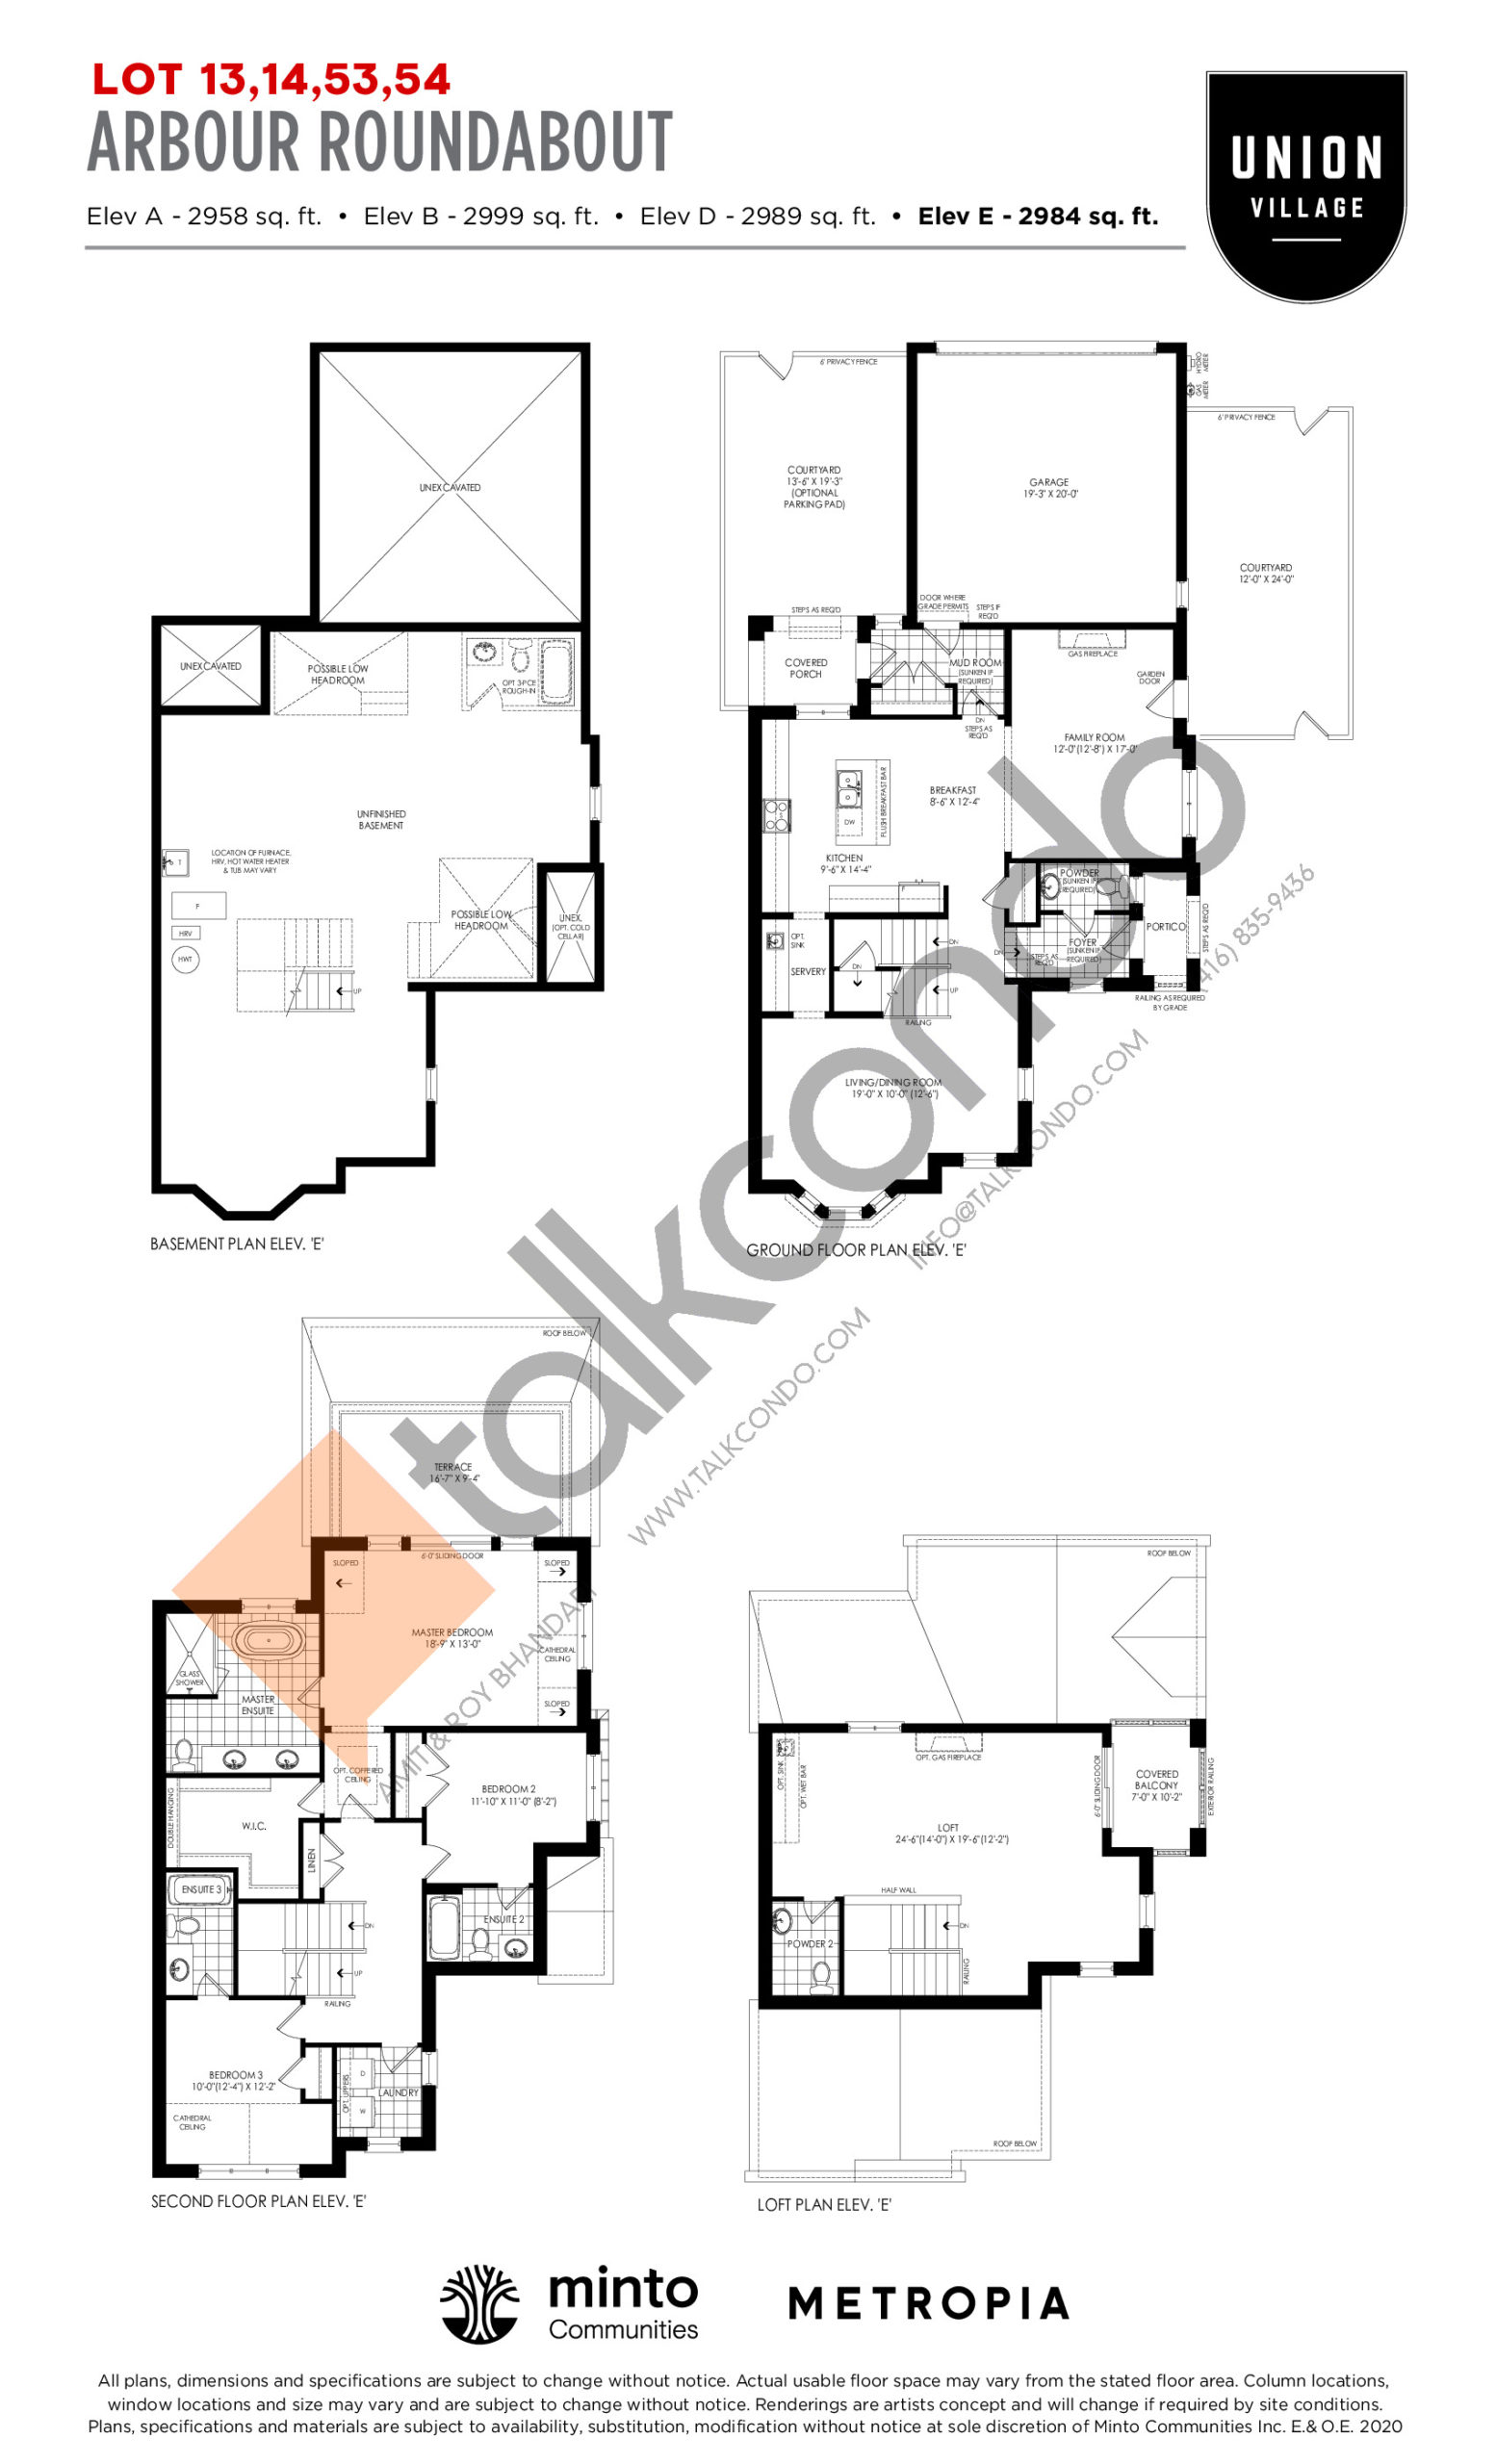 Arbour Roundabout Elev E - The Rosewood Collection Floor Plan at Union Village - 2984 sq.ft